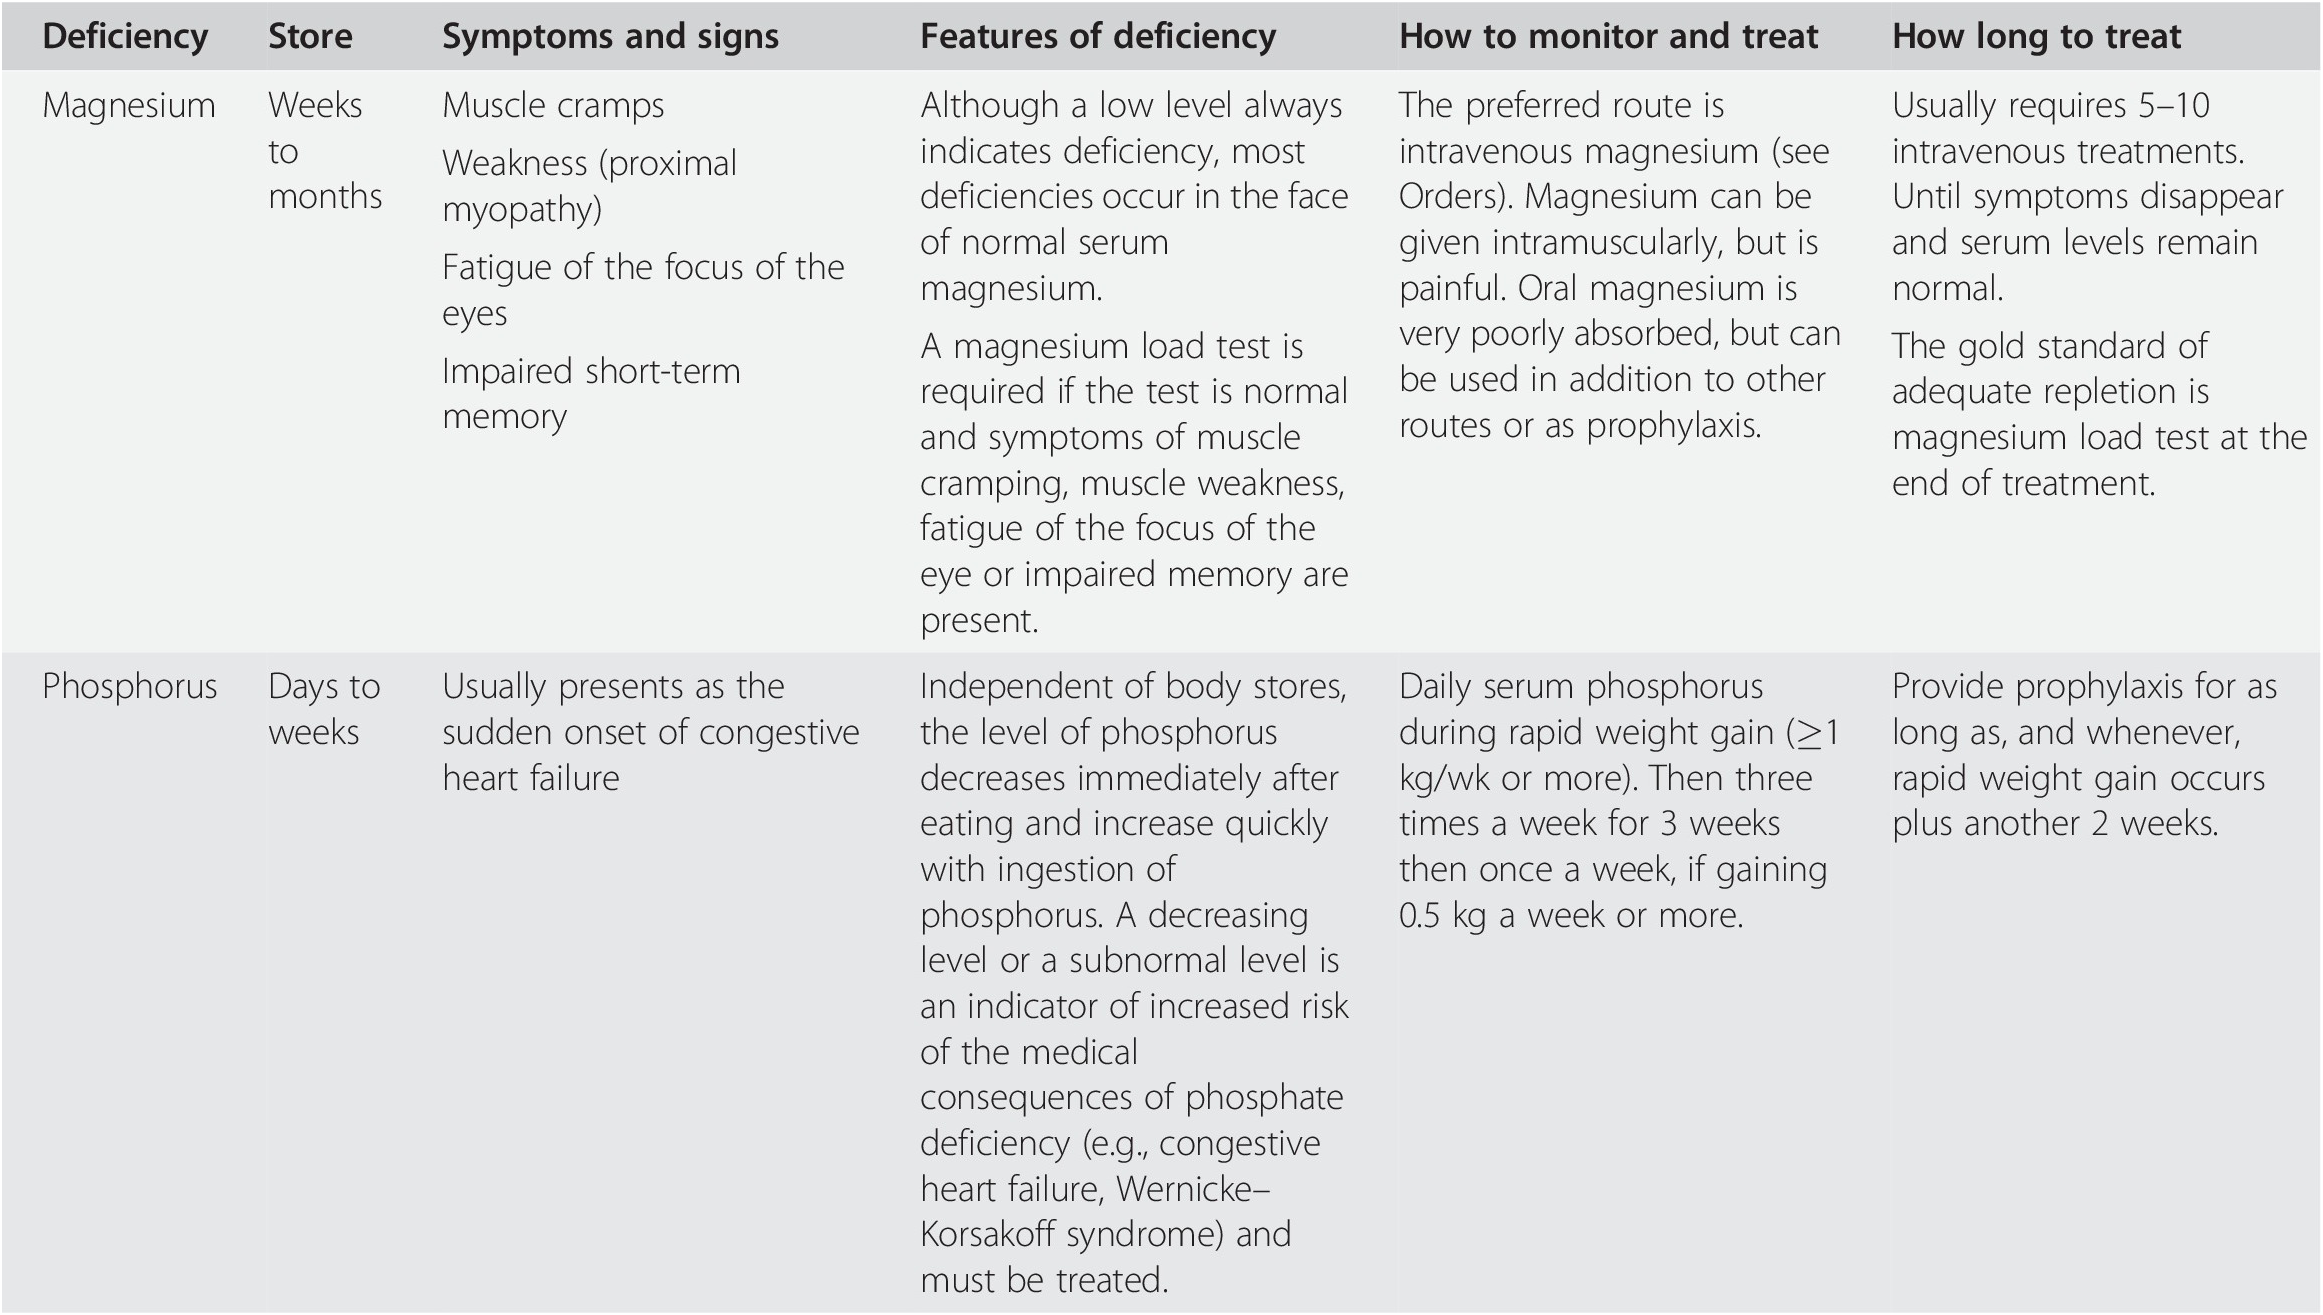 Diagnosis and Clinical Features (Section 3) - Medical